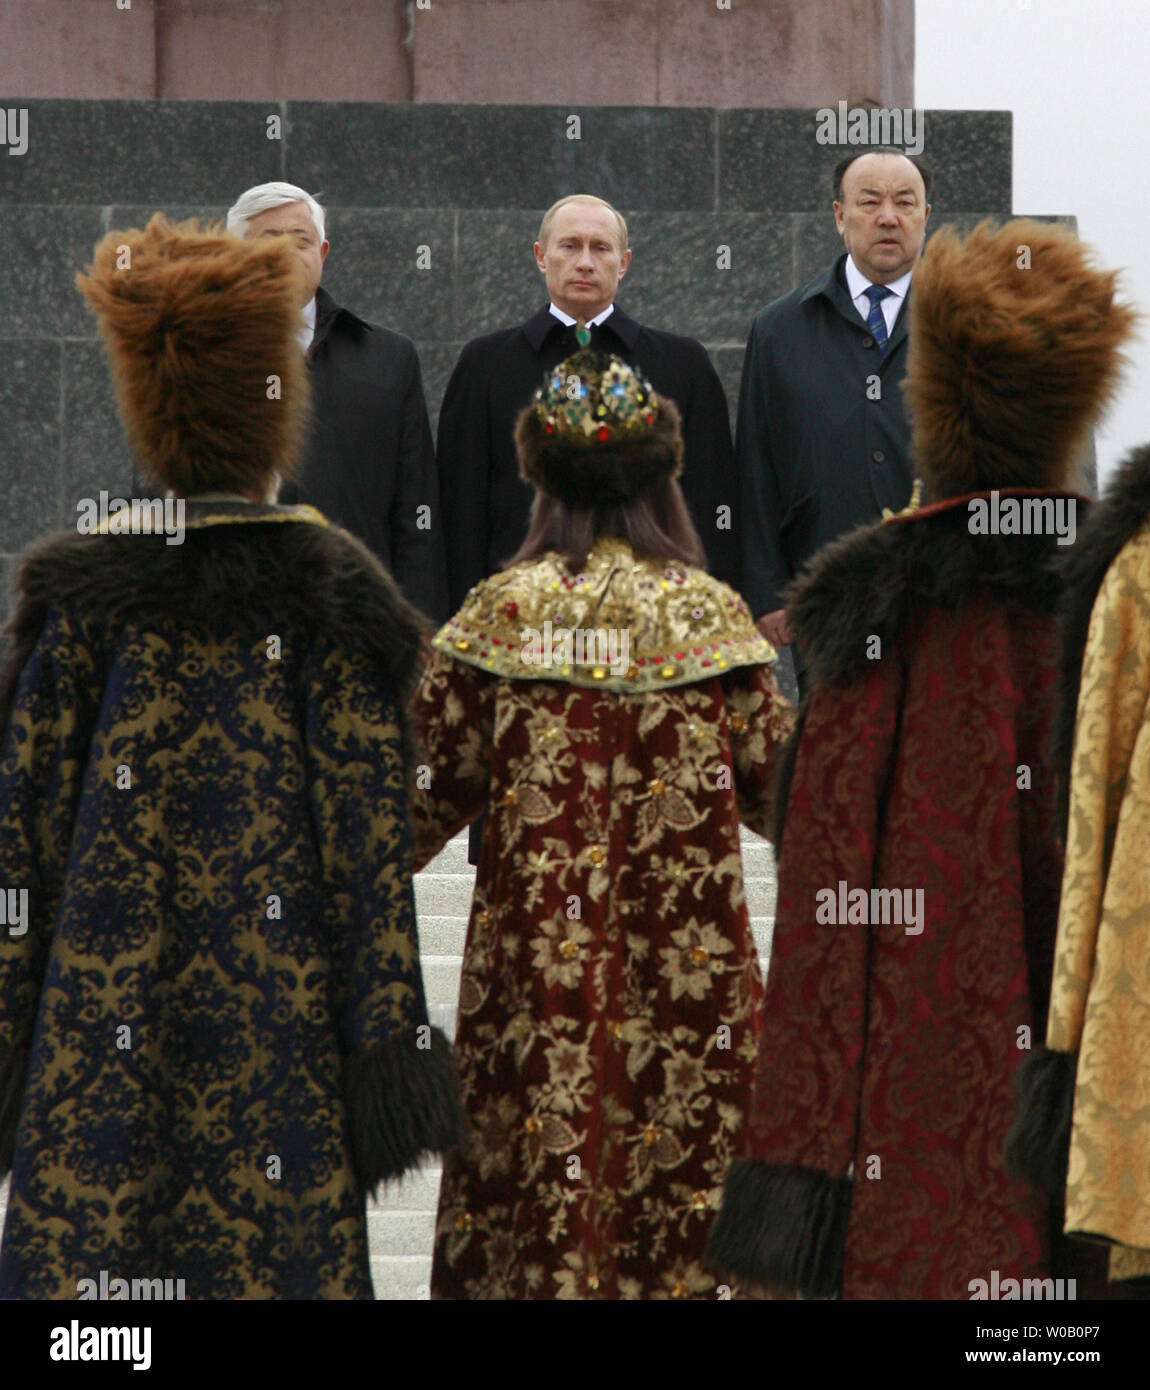 Russian President Vladimir Putin C Is Greeted By Women In Traditional Wool Dresses In City Of Ufa Upon His Arrival With The One Day Visit To The Russian Province Of Bashkortostan In